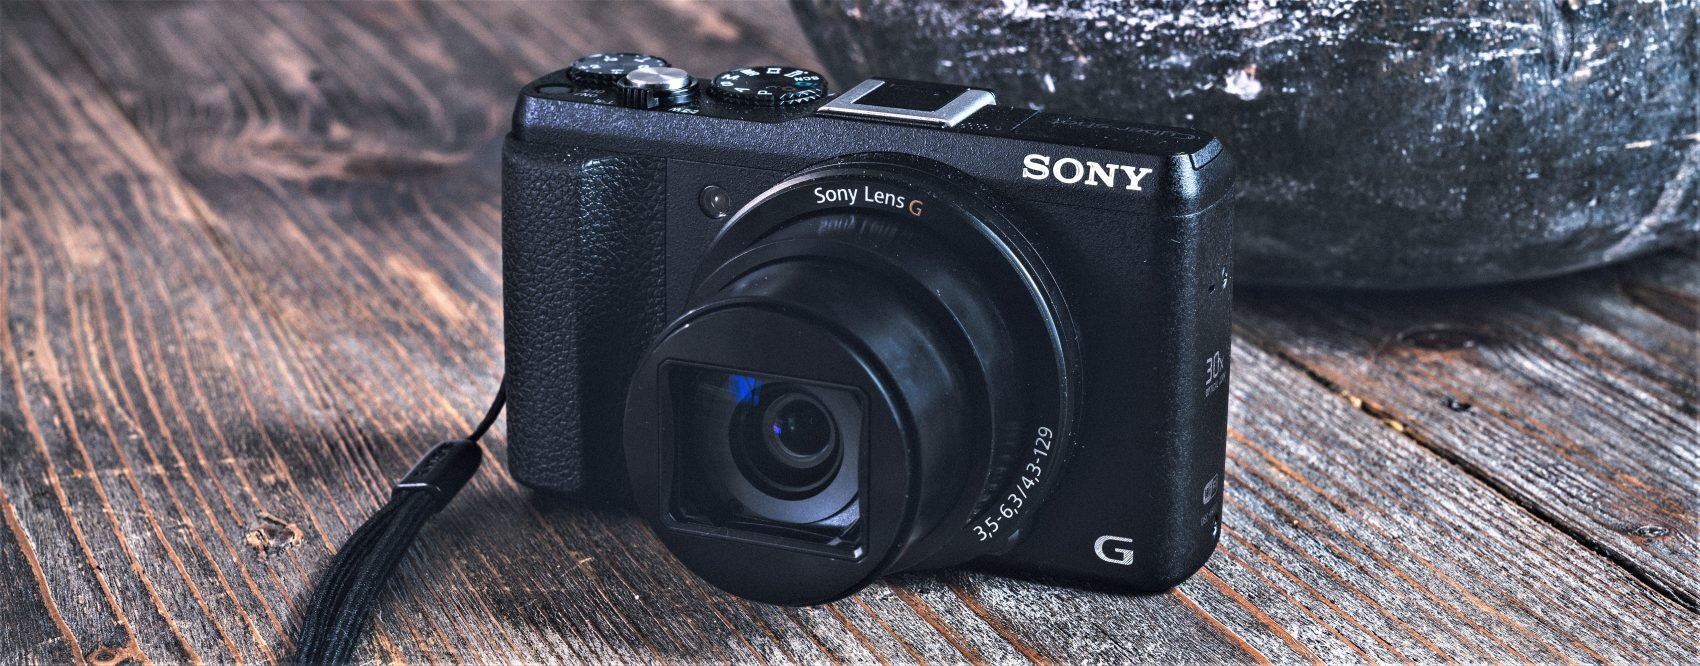 Best Point and Shoot Camera for Video [Complete Guide]